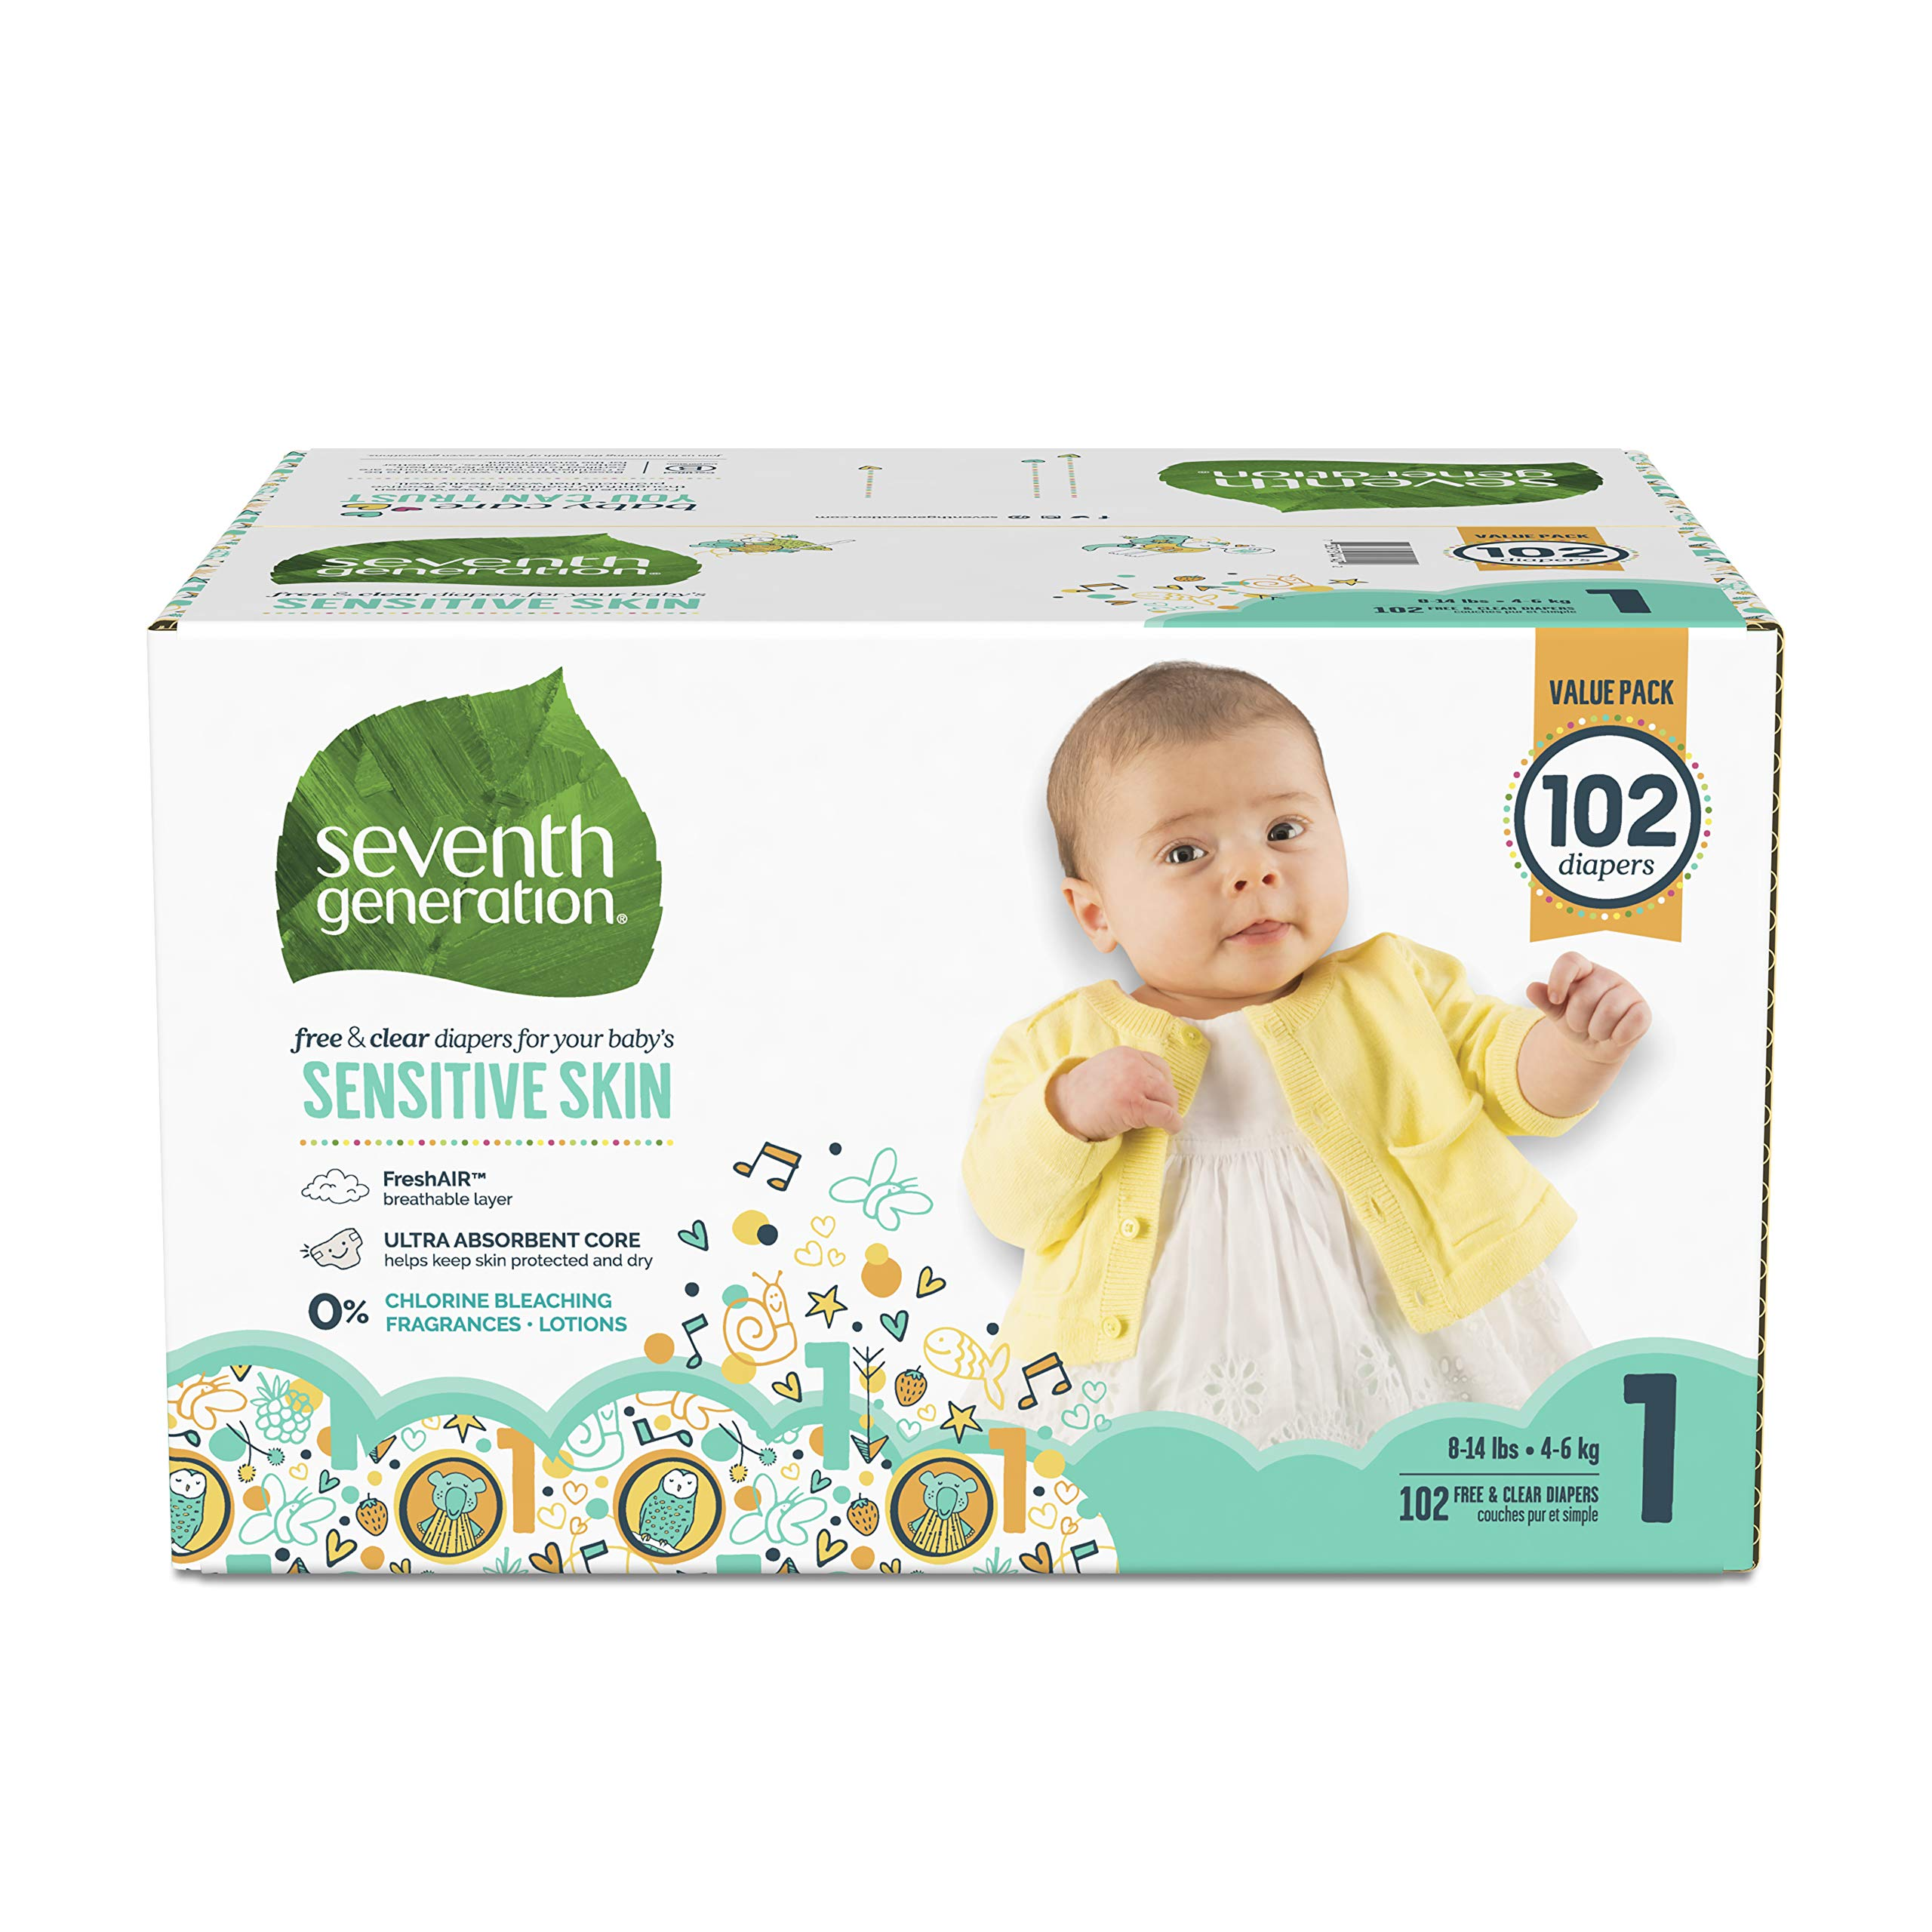 Seventh Generation Baby Diapers for Sensitive Skin, Animal Prints, Size 1, 102 Count (Packaging May Vary) by Seventh Generation